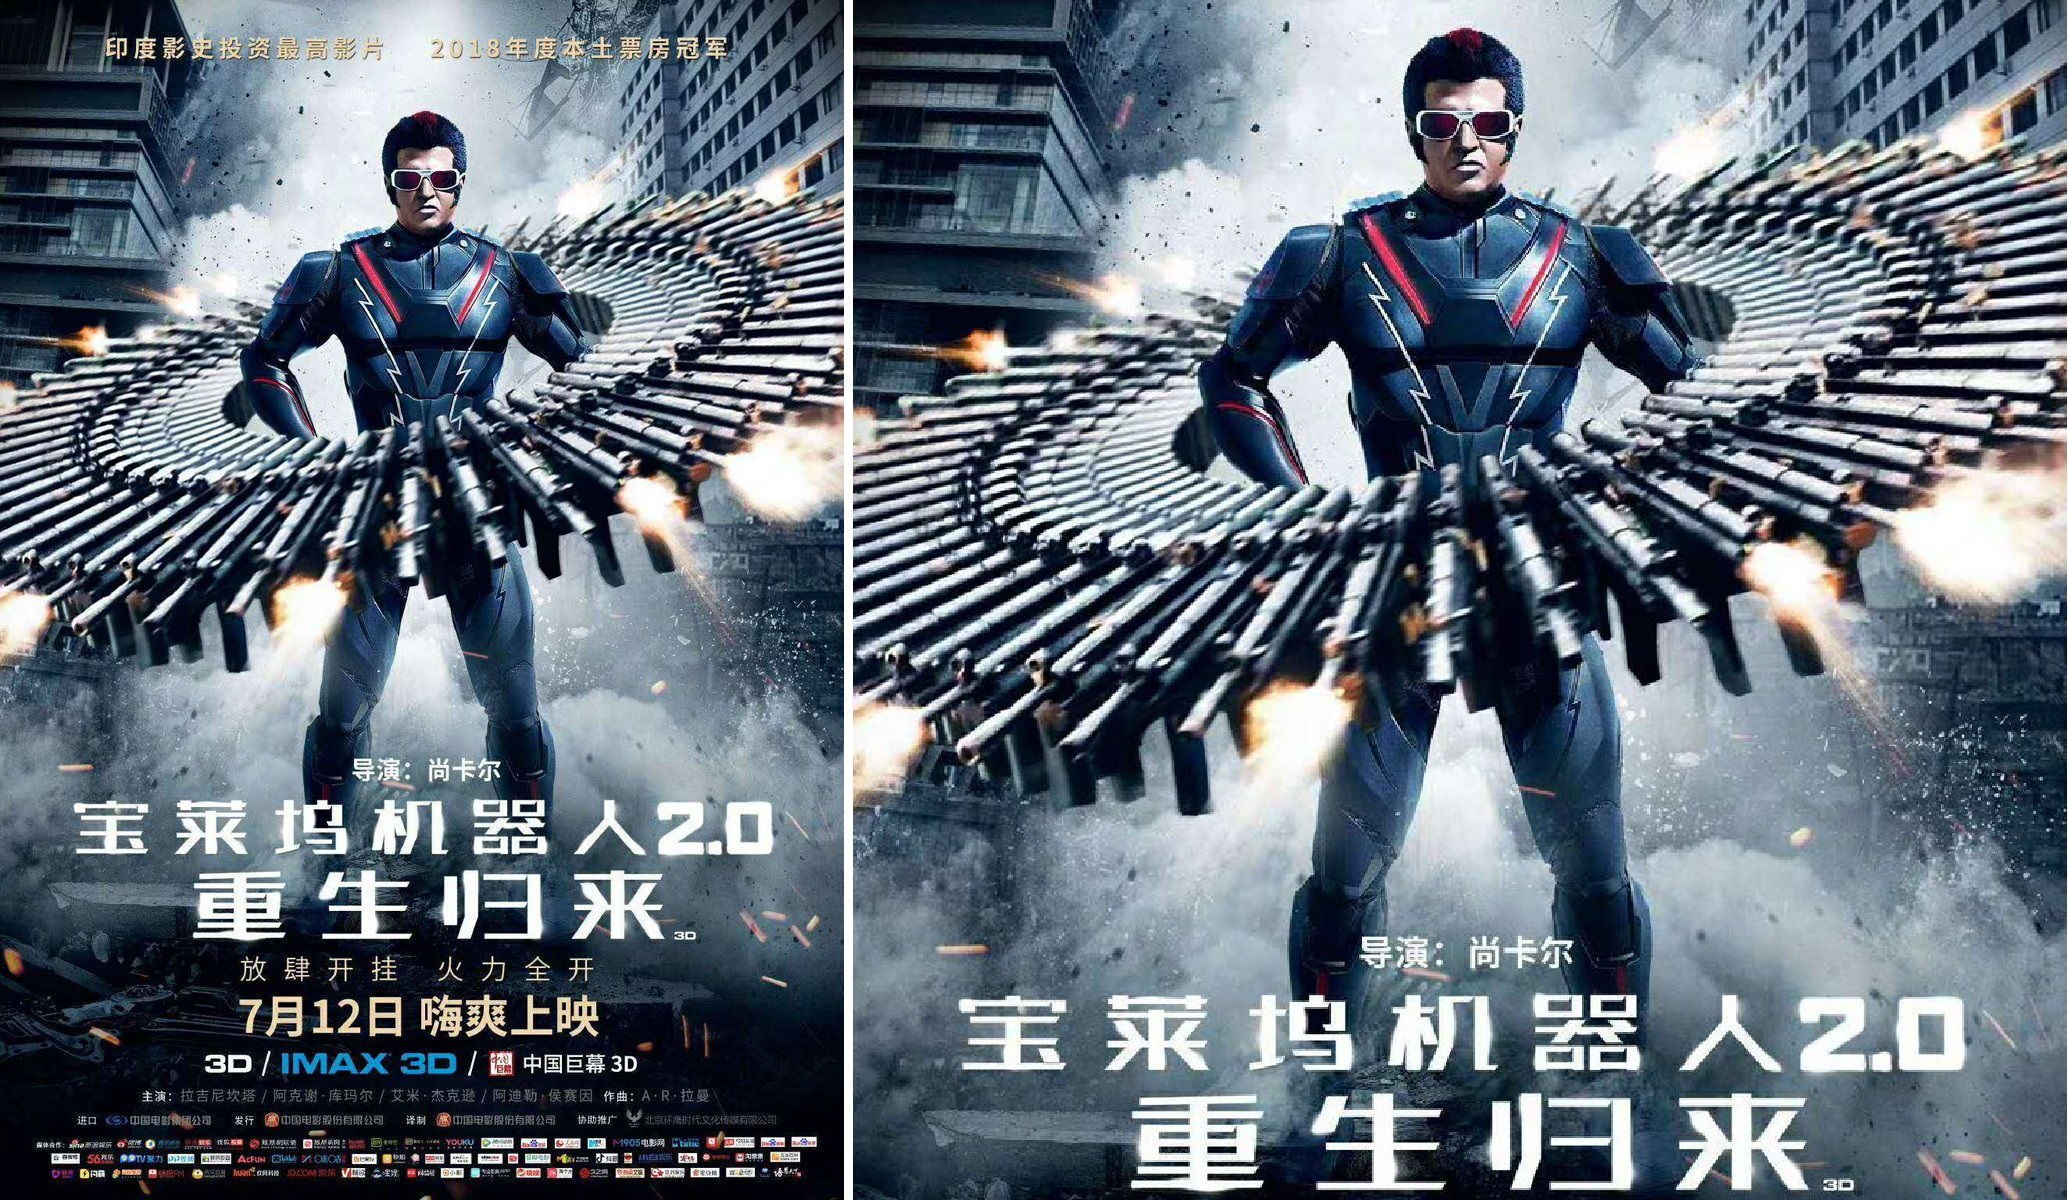 2 point 0 china release